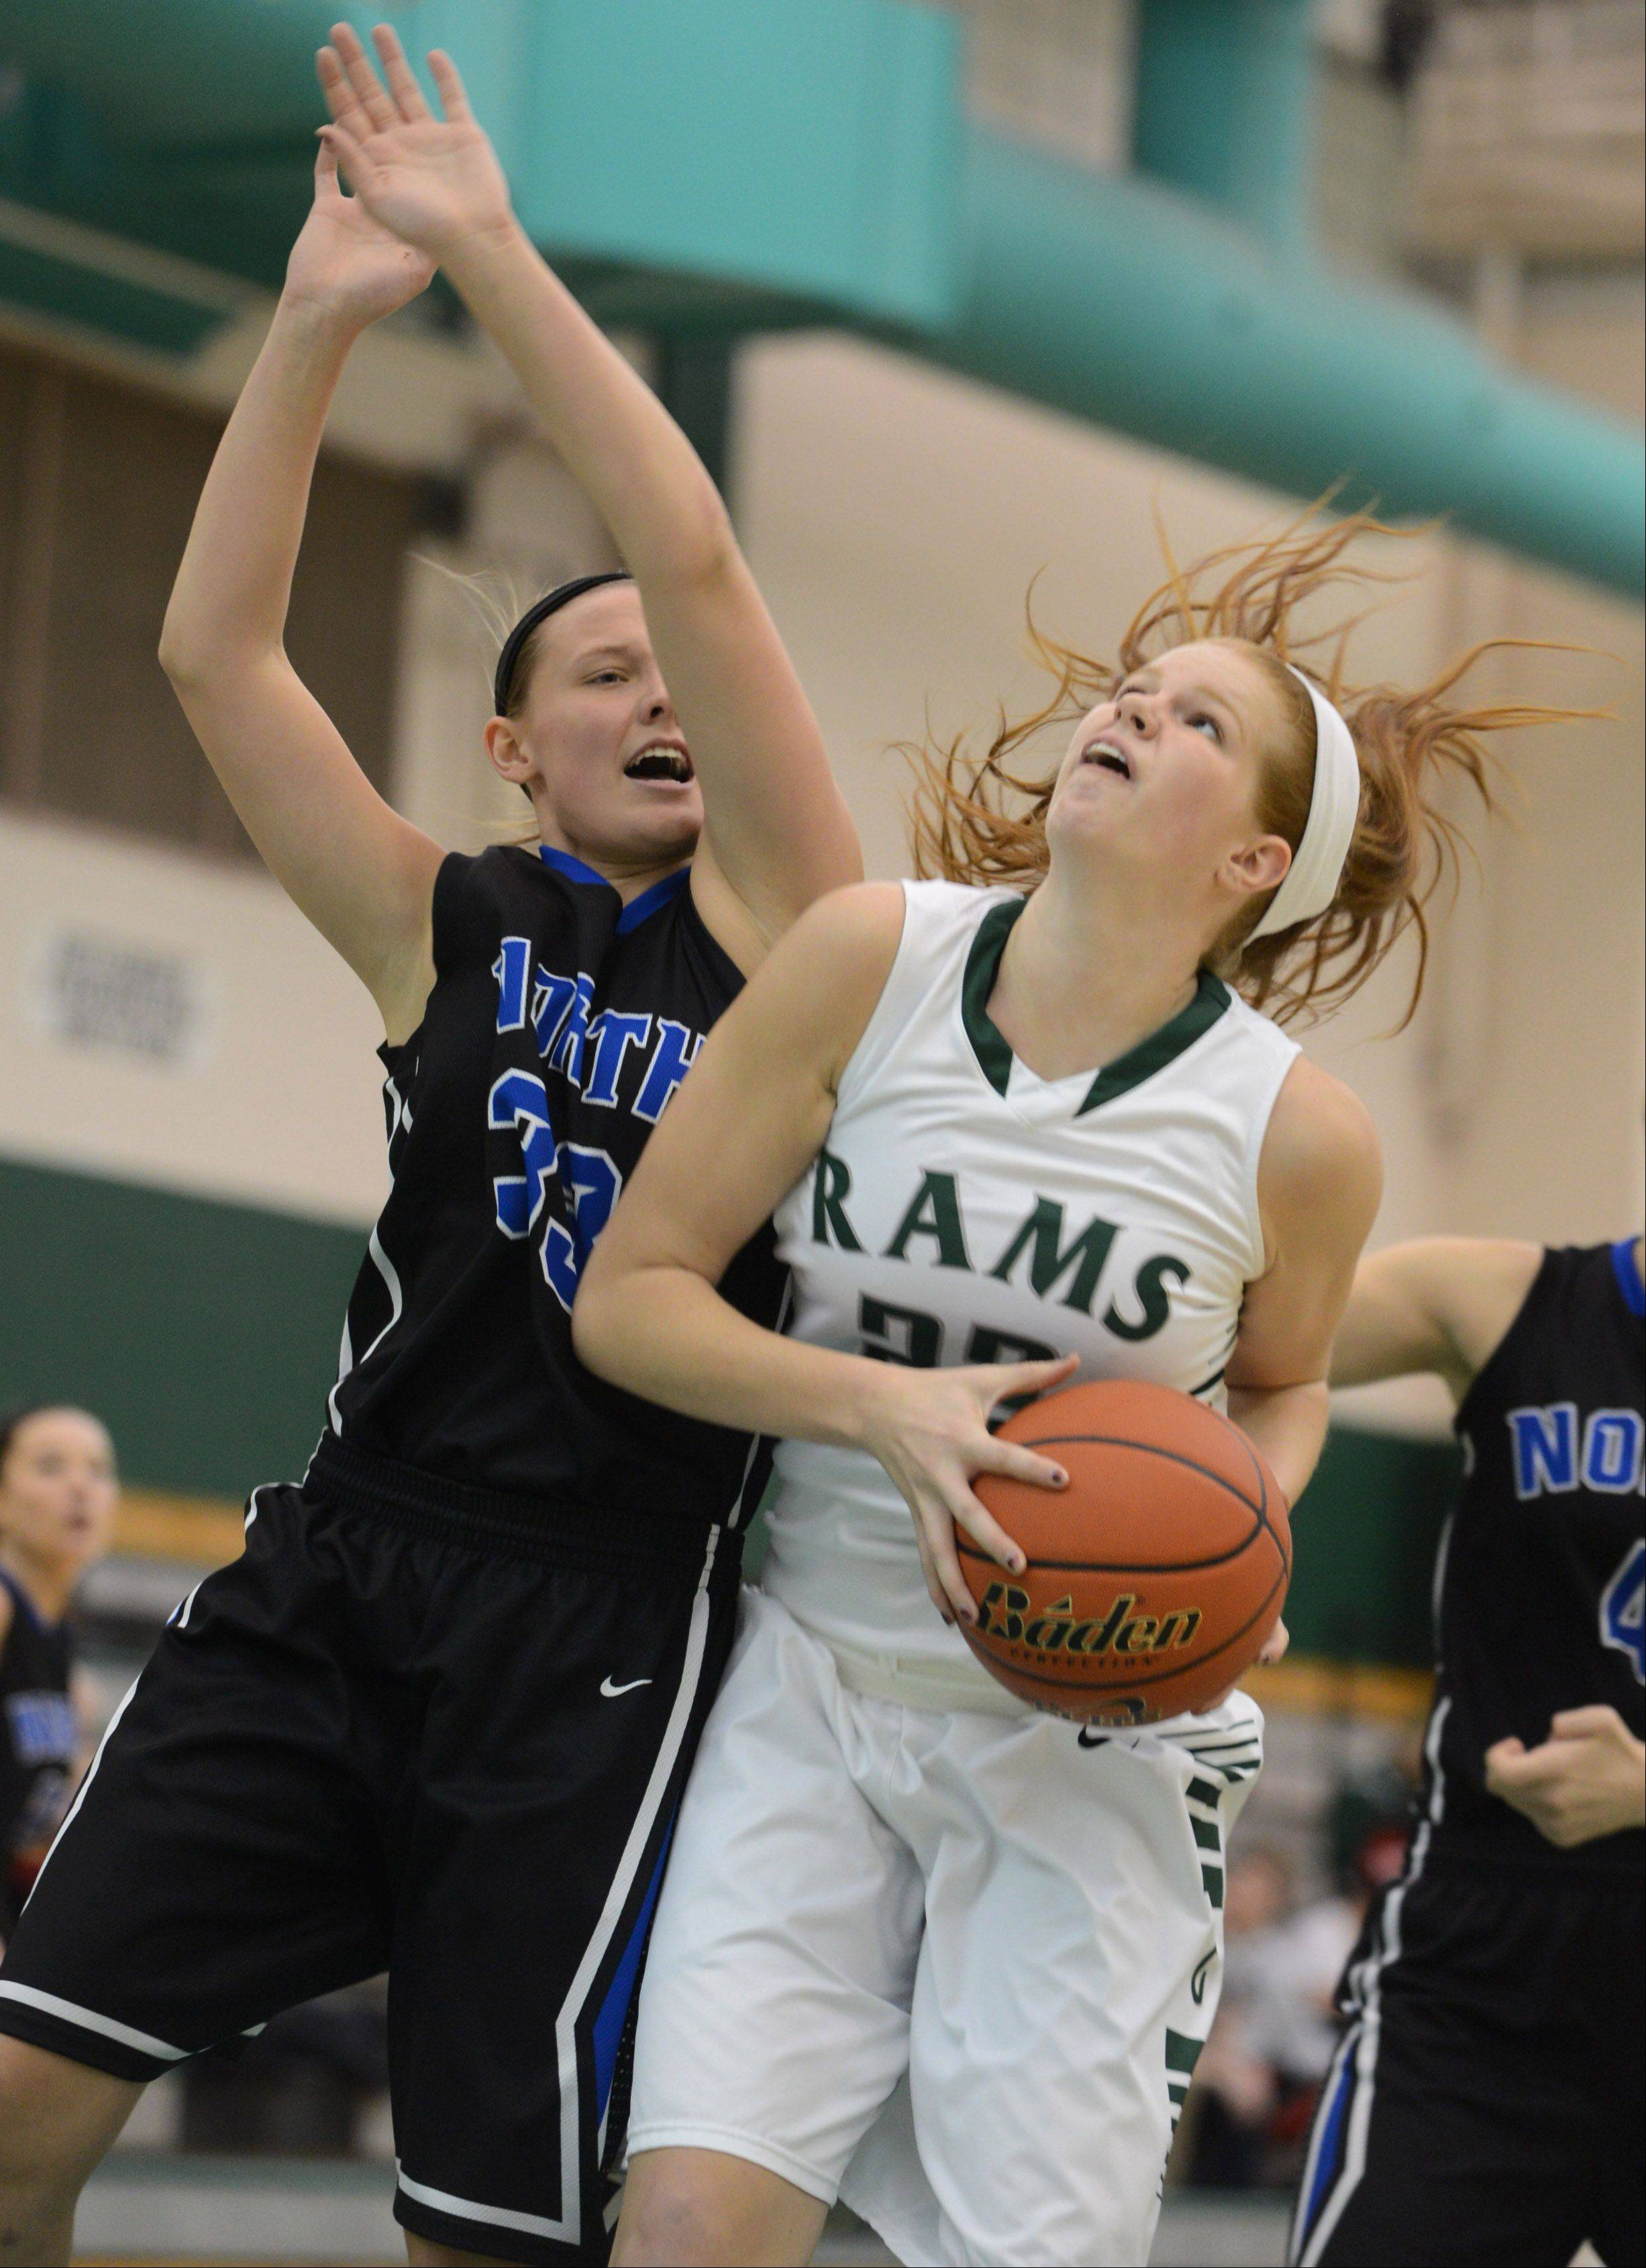 St. Charles North's Nichole Davidson (33) tries to stop the efforts of Grayslake Central's Morgan Dahlstrom on Thursday in Grayslake.